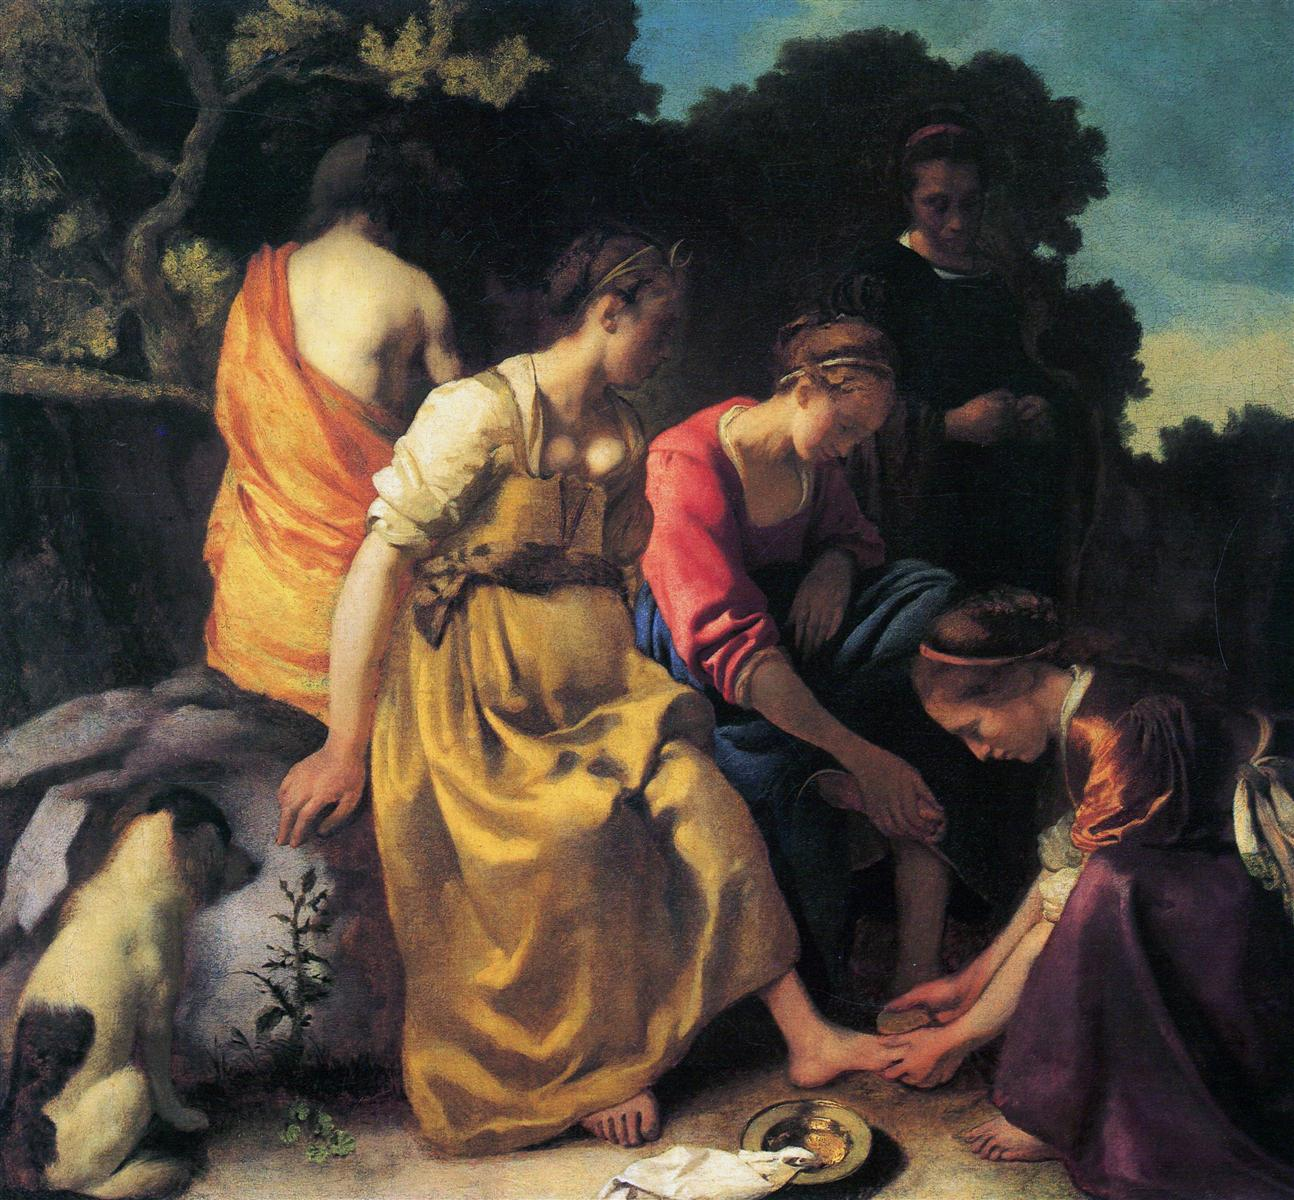 Diana and Her Companions, Johannes Vermeer, 1654